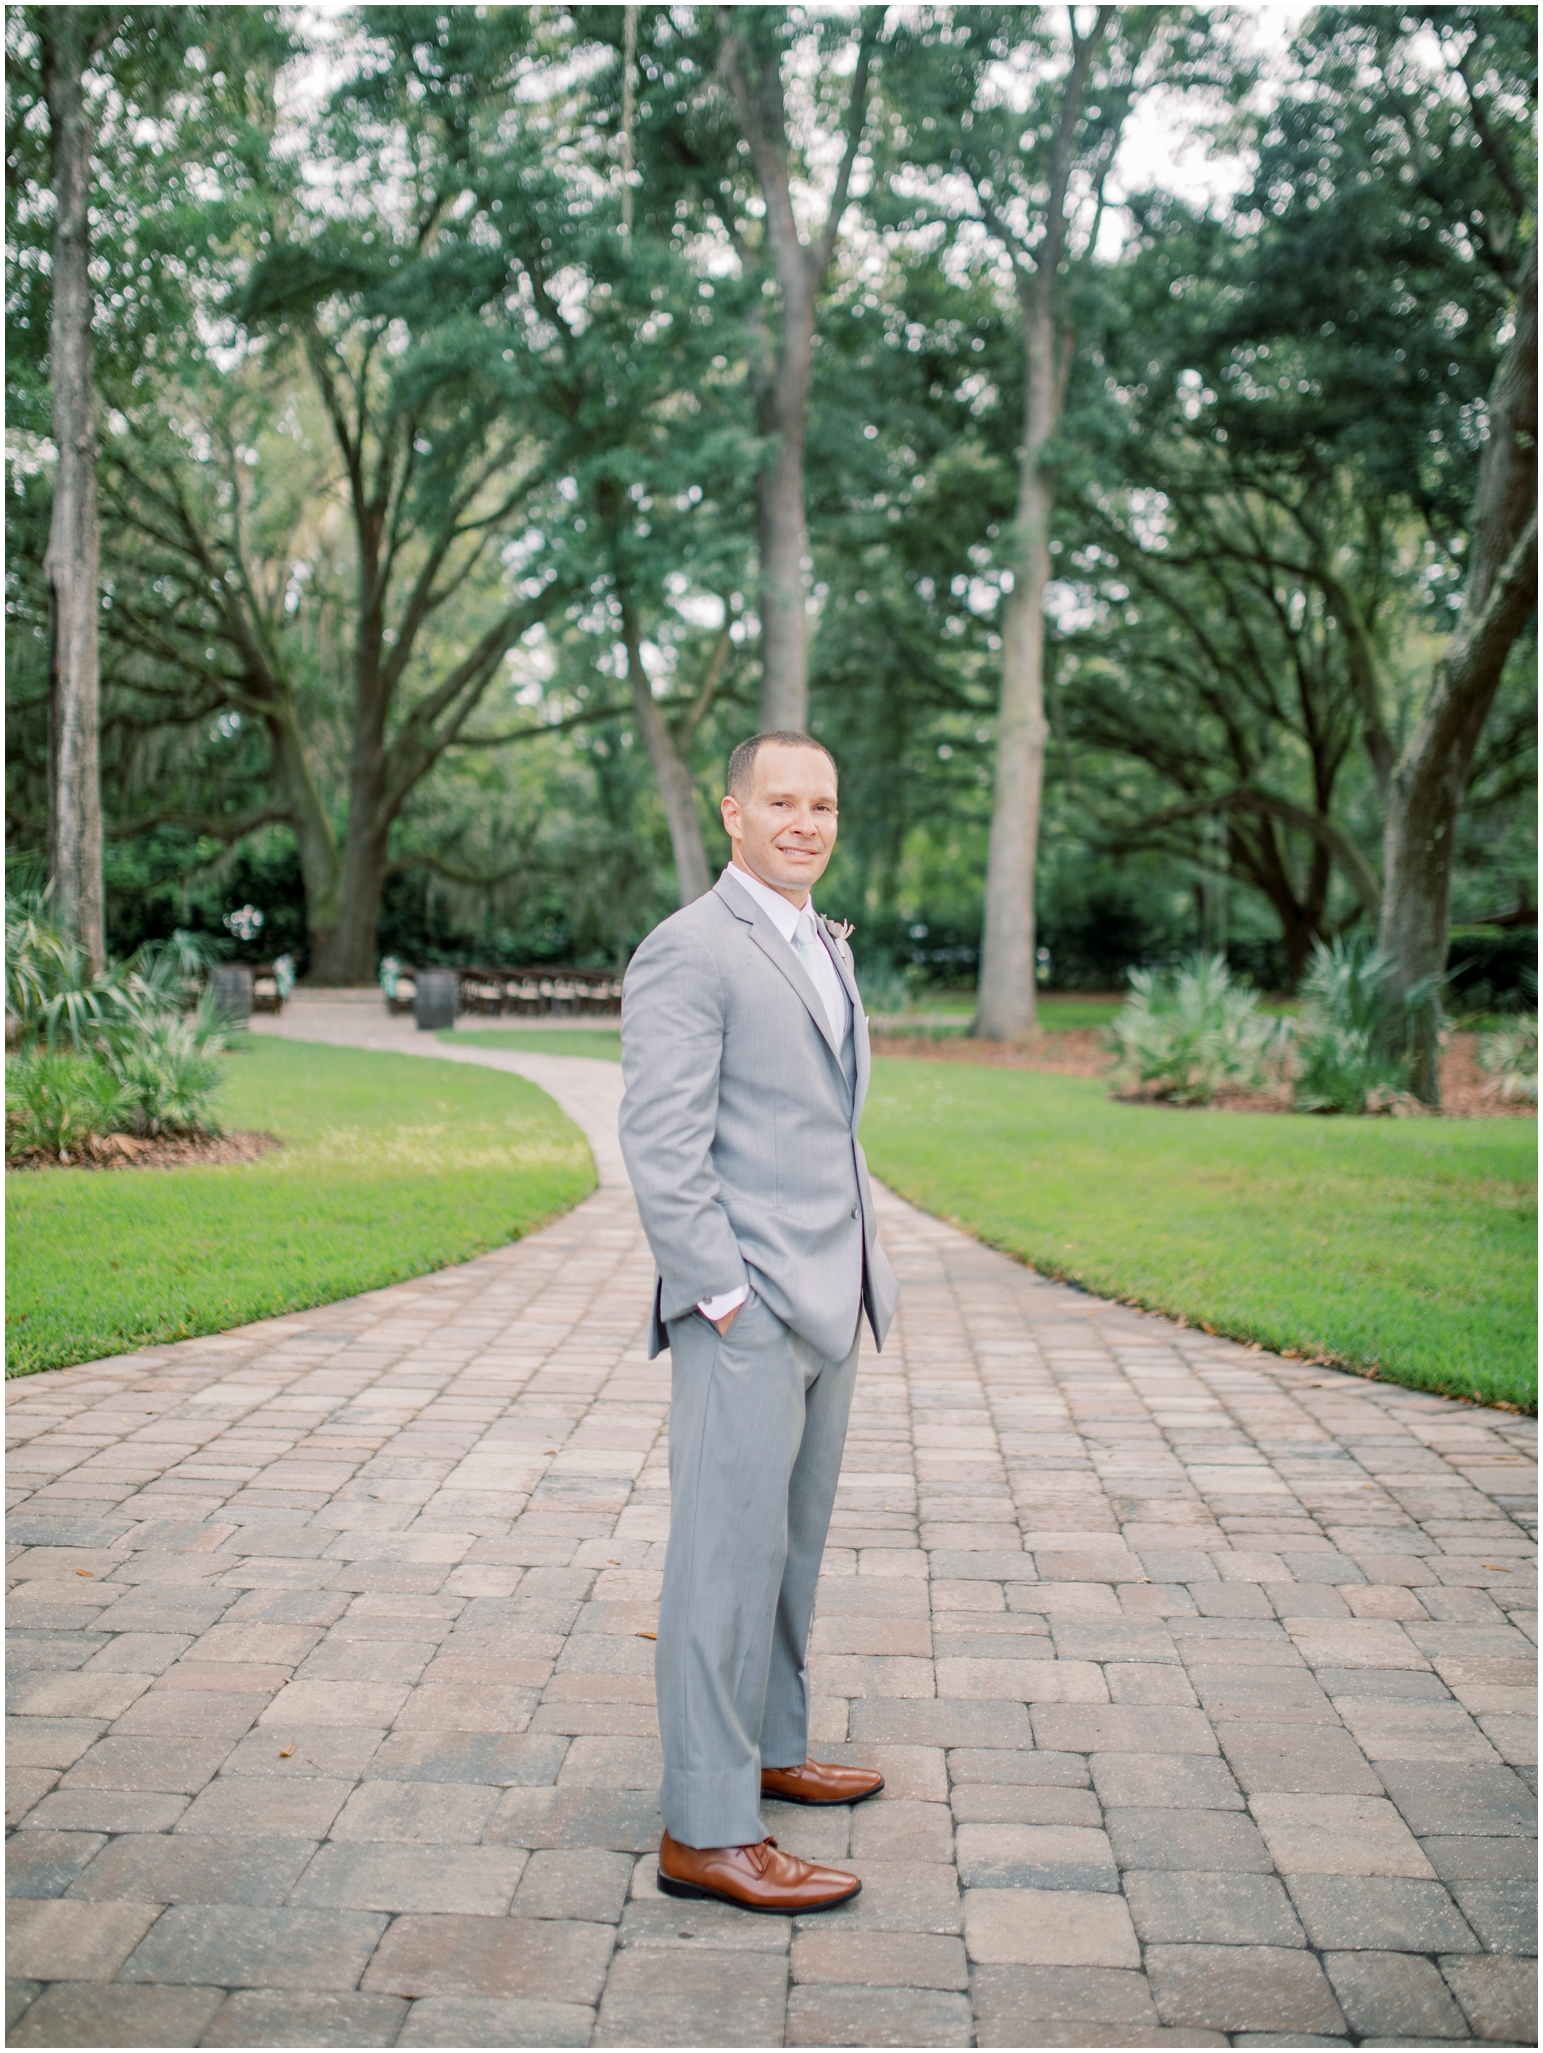 Lisa Silva Photography- Jacksonville, St Augustine, Fernandina Beach, Amelia Island, Ponte Vedra Beach, North East Florida Fine Art Film Photographer- Ashley and Shawn's wedding at bowing oaks plantation_0044.jpg